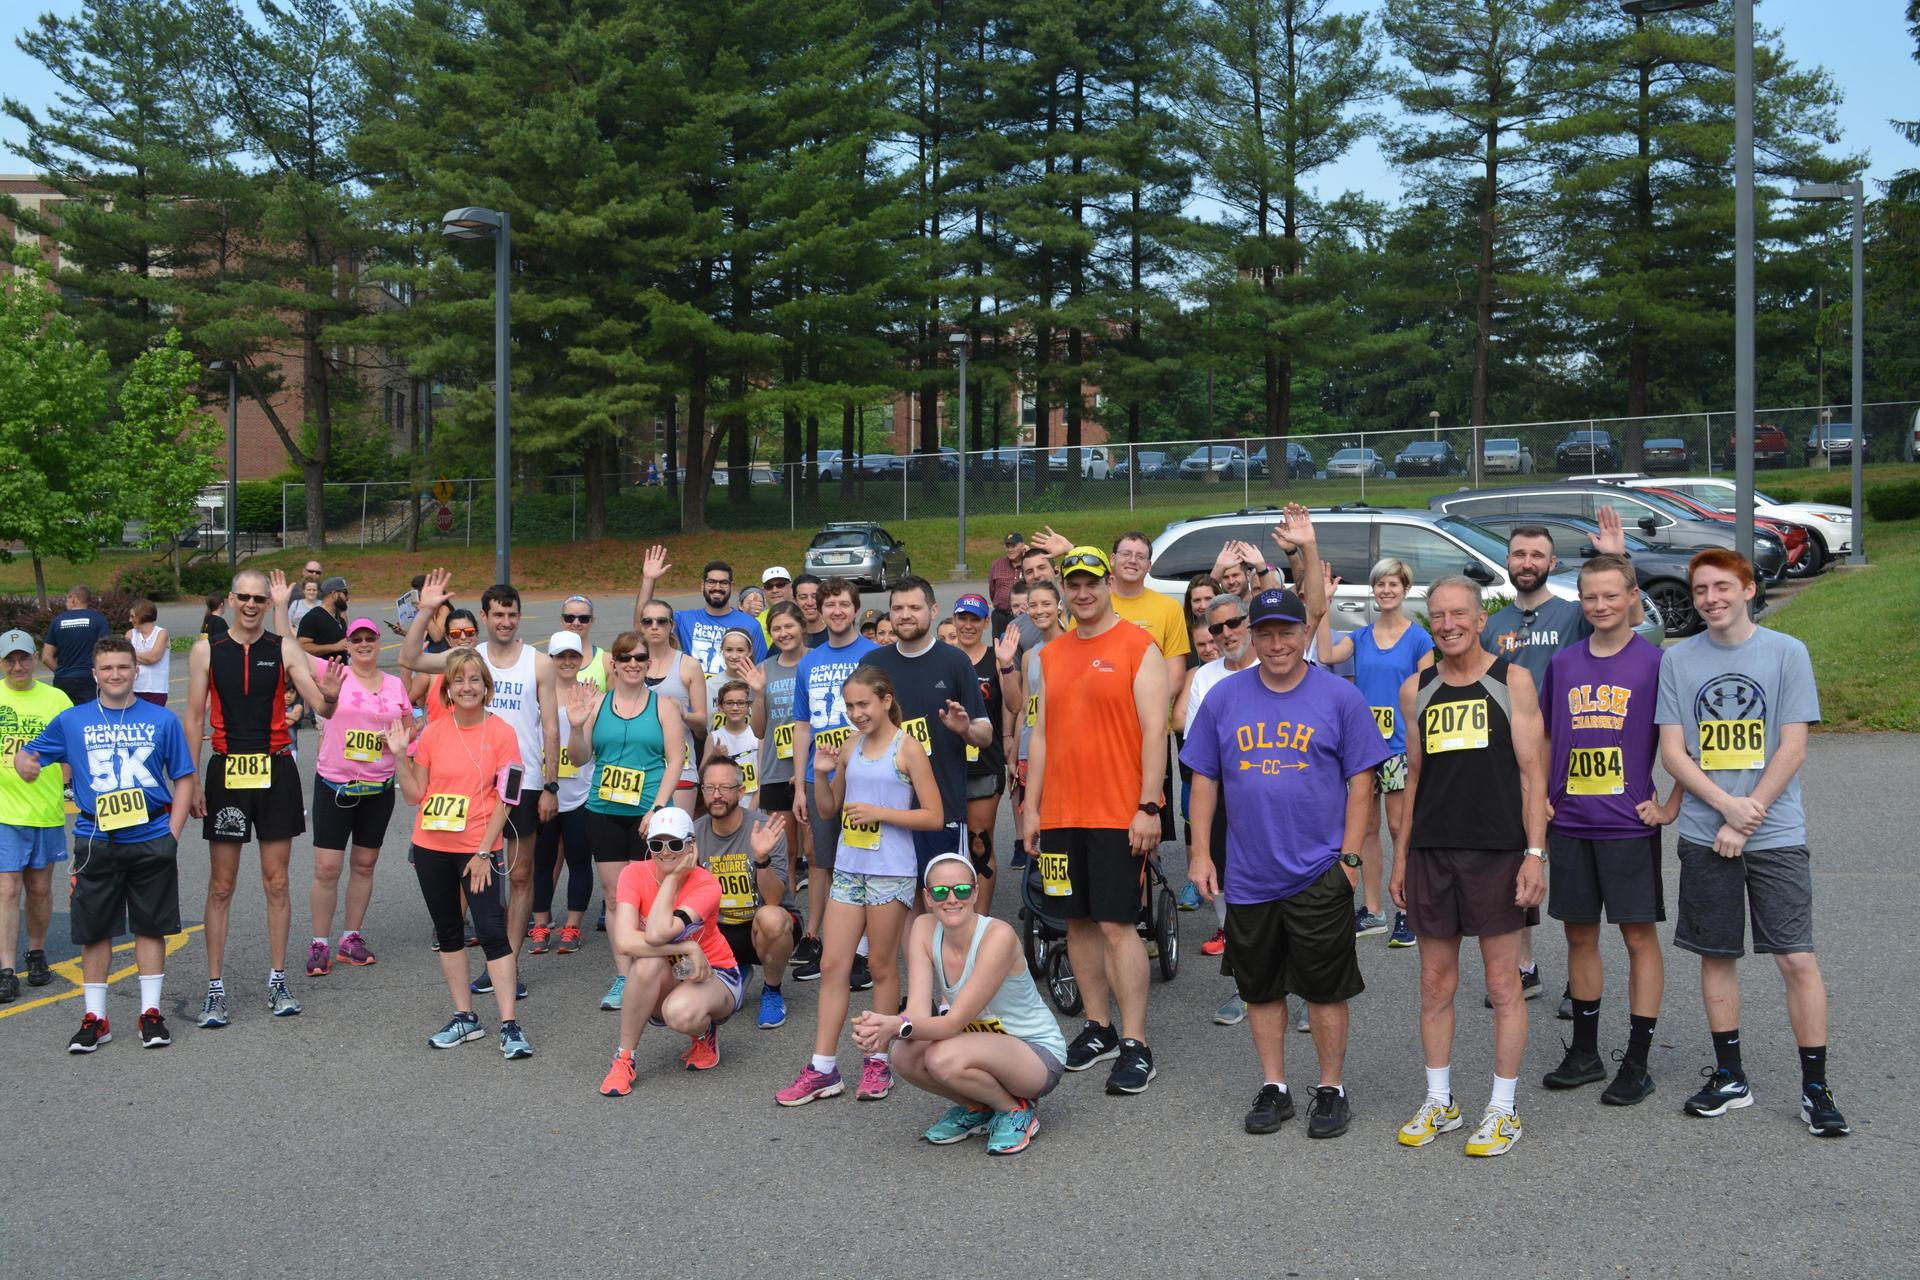 The participants in the 2018 Rally for McNally 5K race before the start